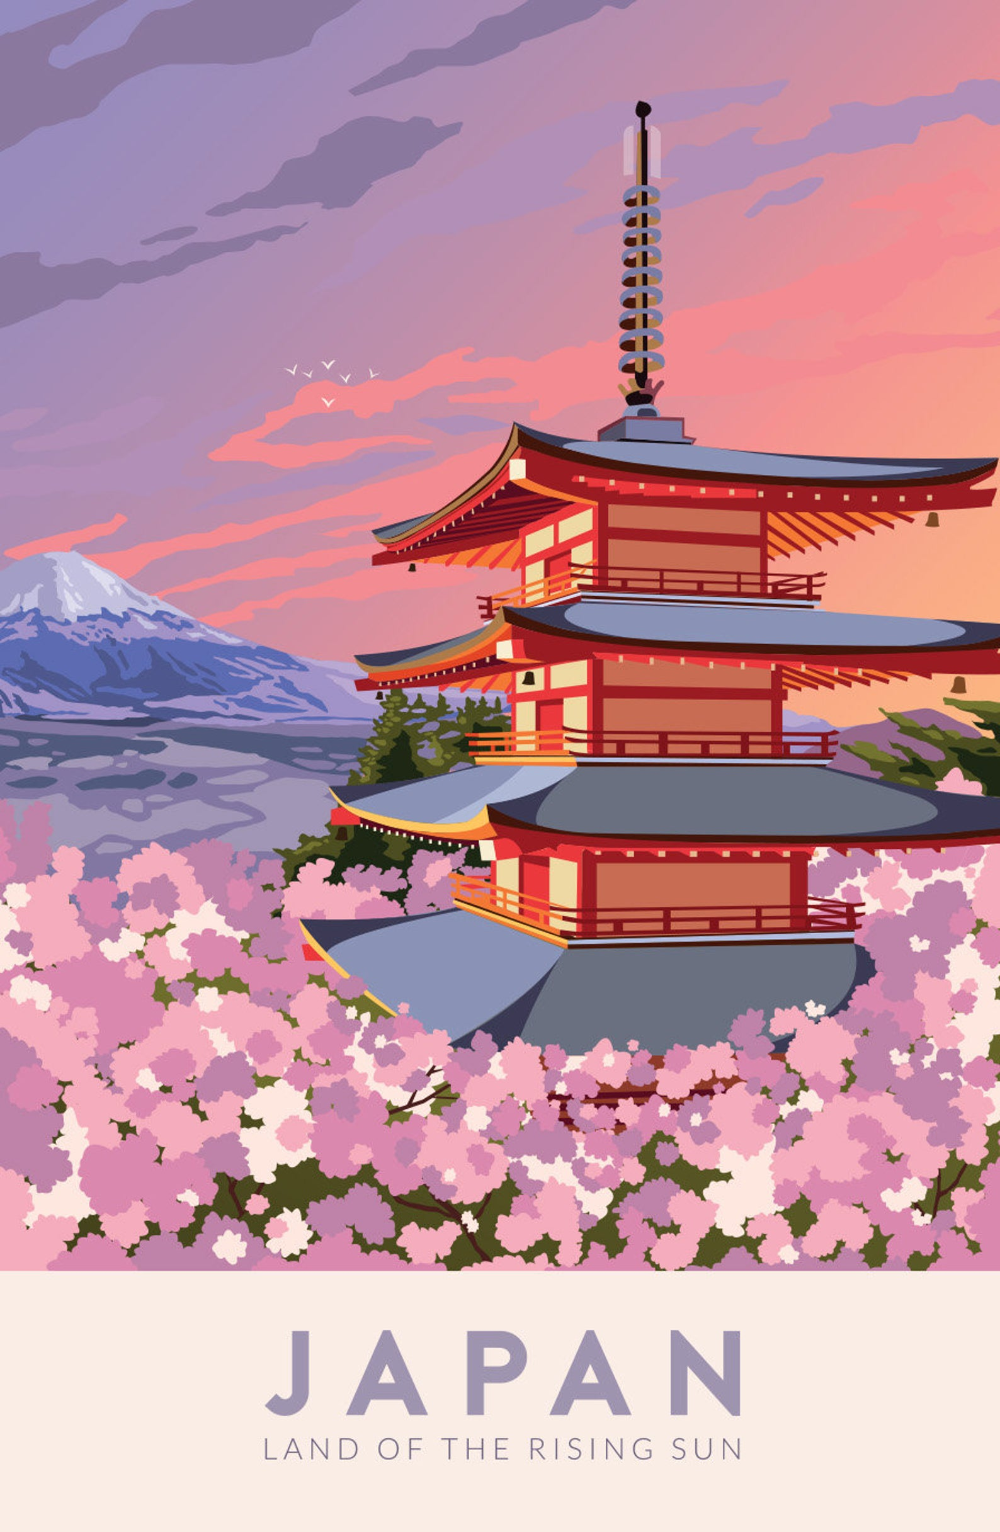 Japan Print Travel Poster | Japanese Cherry Blossom Japanese Pagoda Retro Travel Poster Art Tokyo Japan Mt Fuji Travel Art Vacation Art